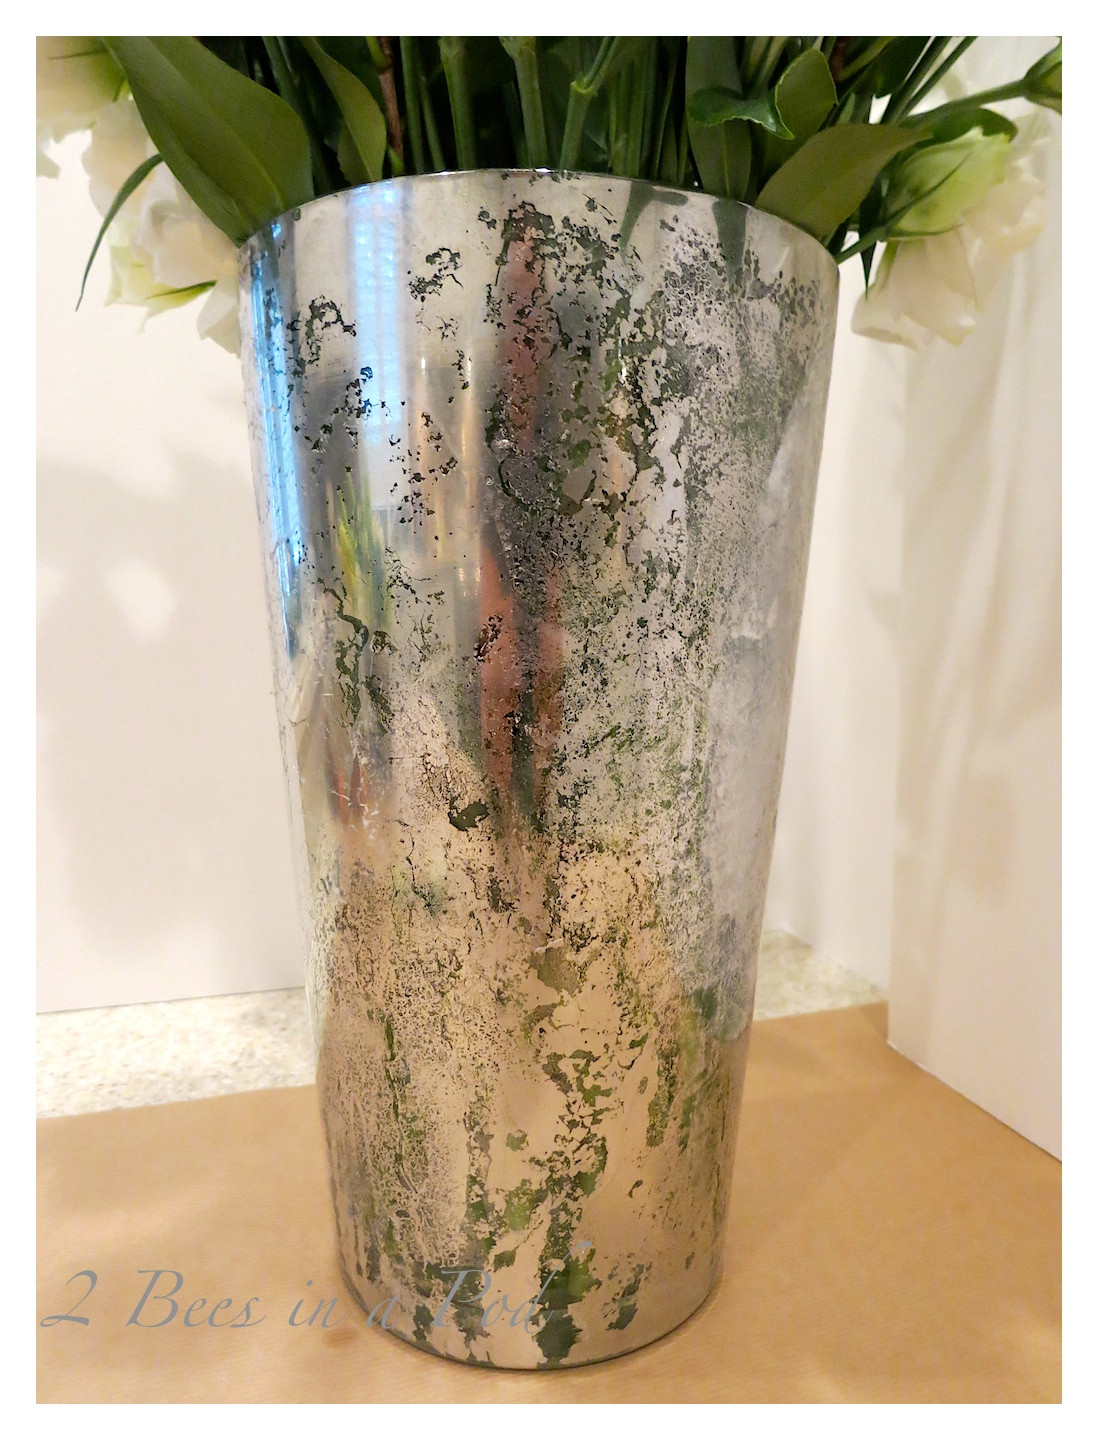 Best ideas about Mercury Glass DIY . Save or Pin DIY Mercury Glass Vases 2 Bees in a Pod Now.